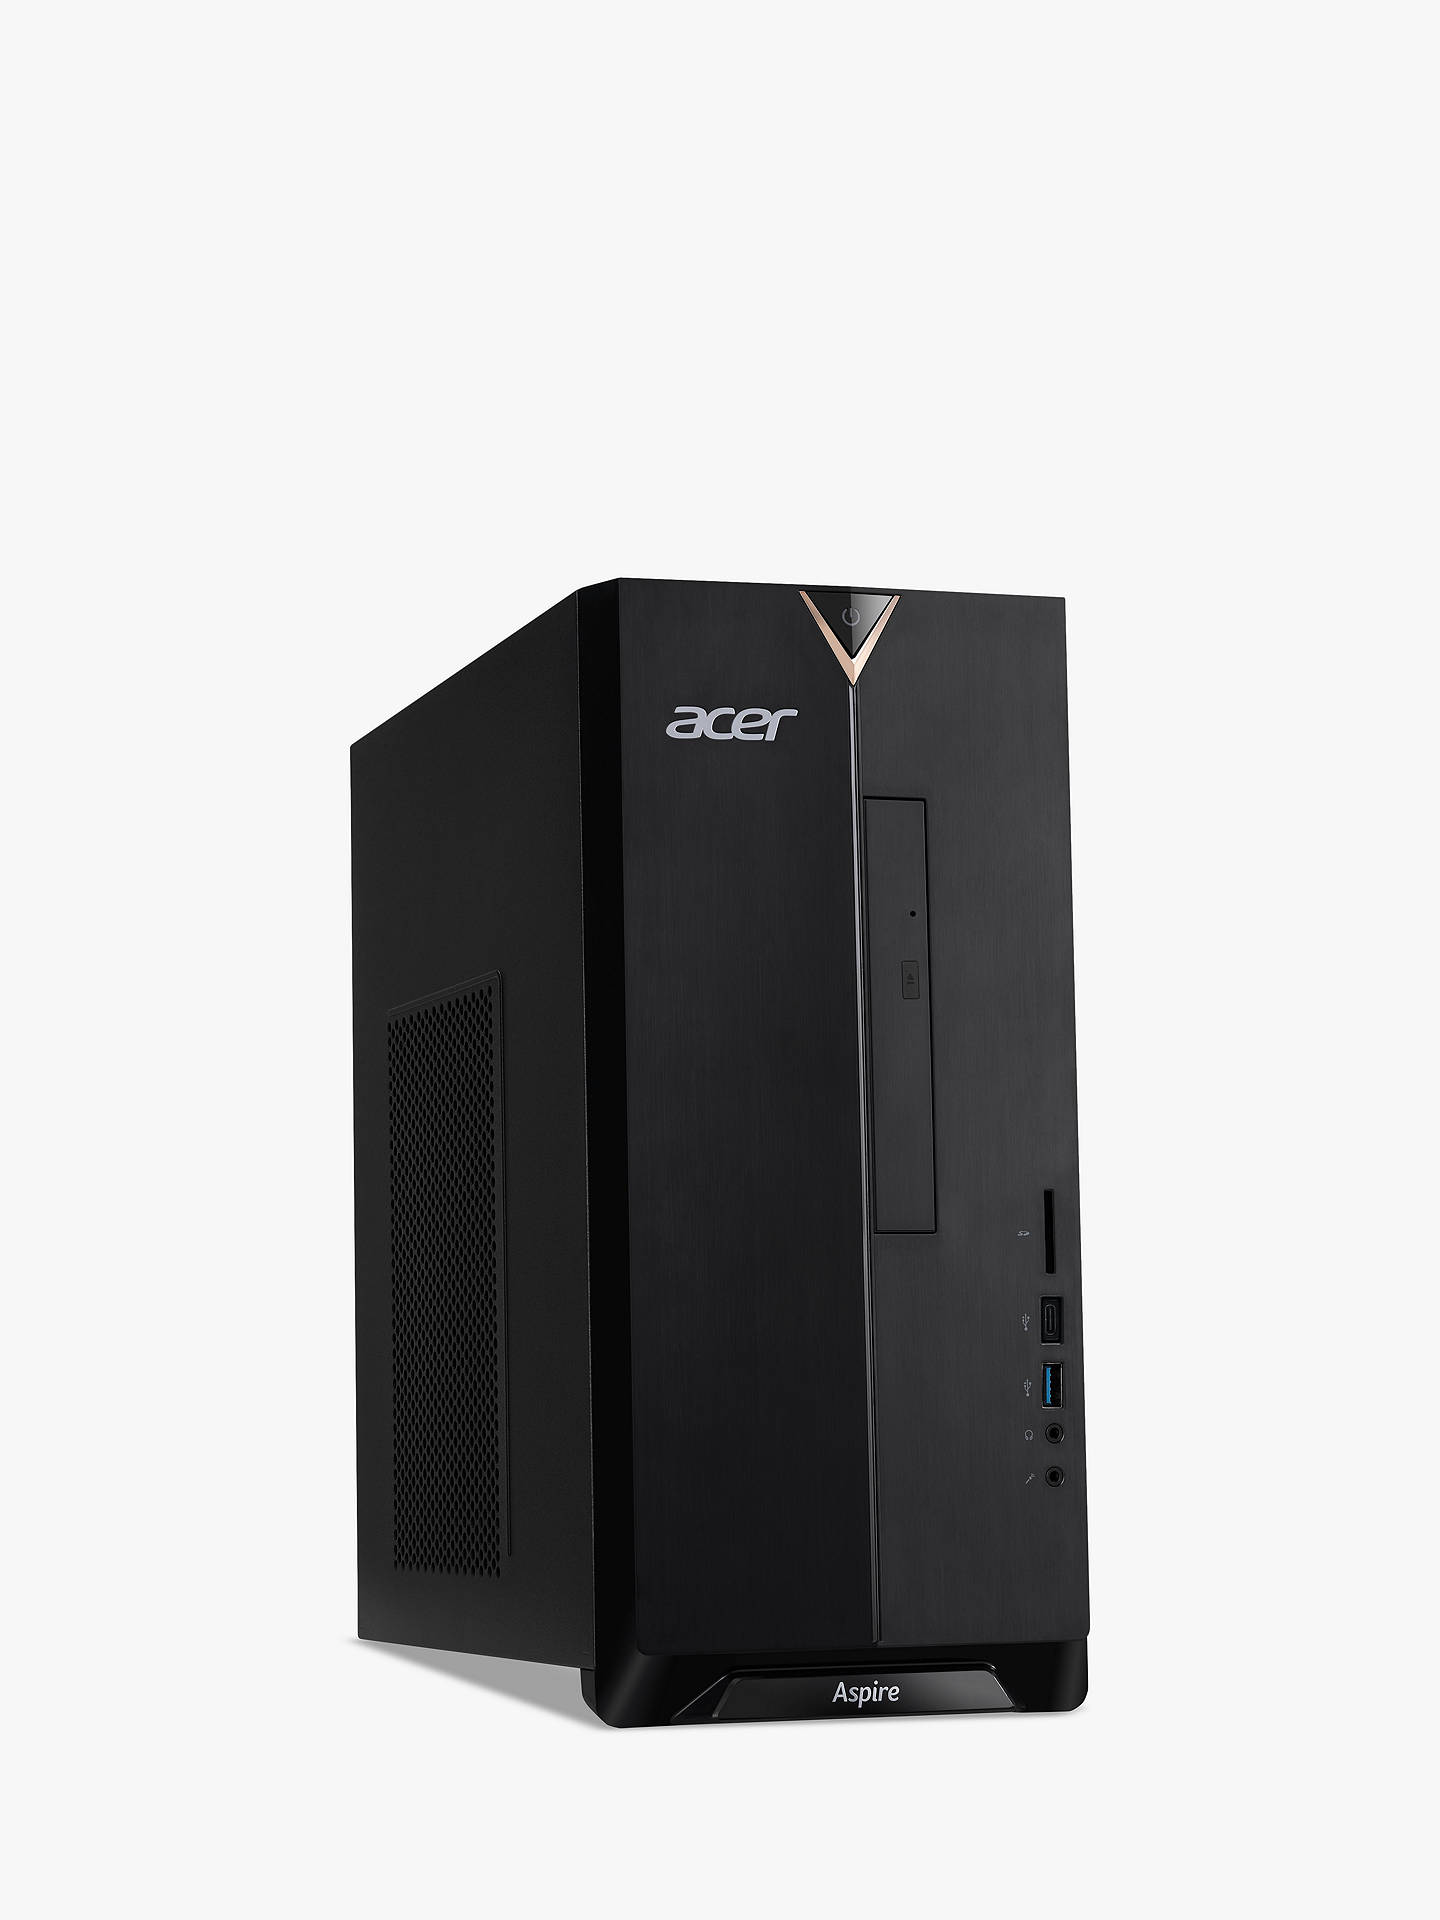 Buy Acer TC-895 Desktop PC, Intel Core i7 Processor, 8GB RAM, 1TB HDD + 16GB Intel Optane Memory, Black Online at johnlewis.com